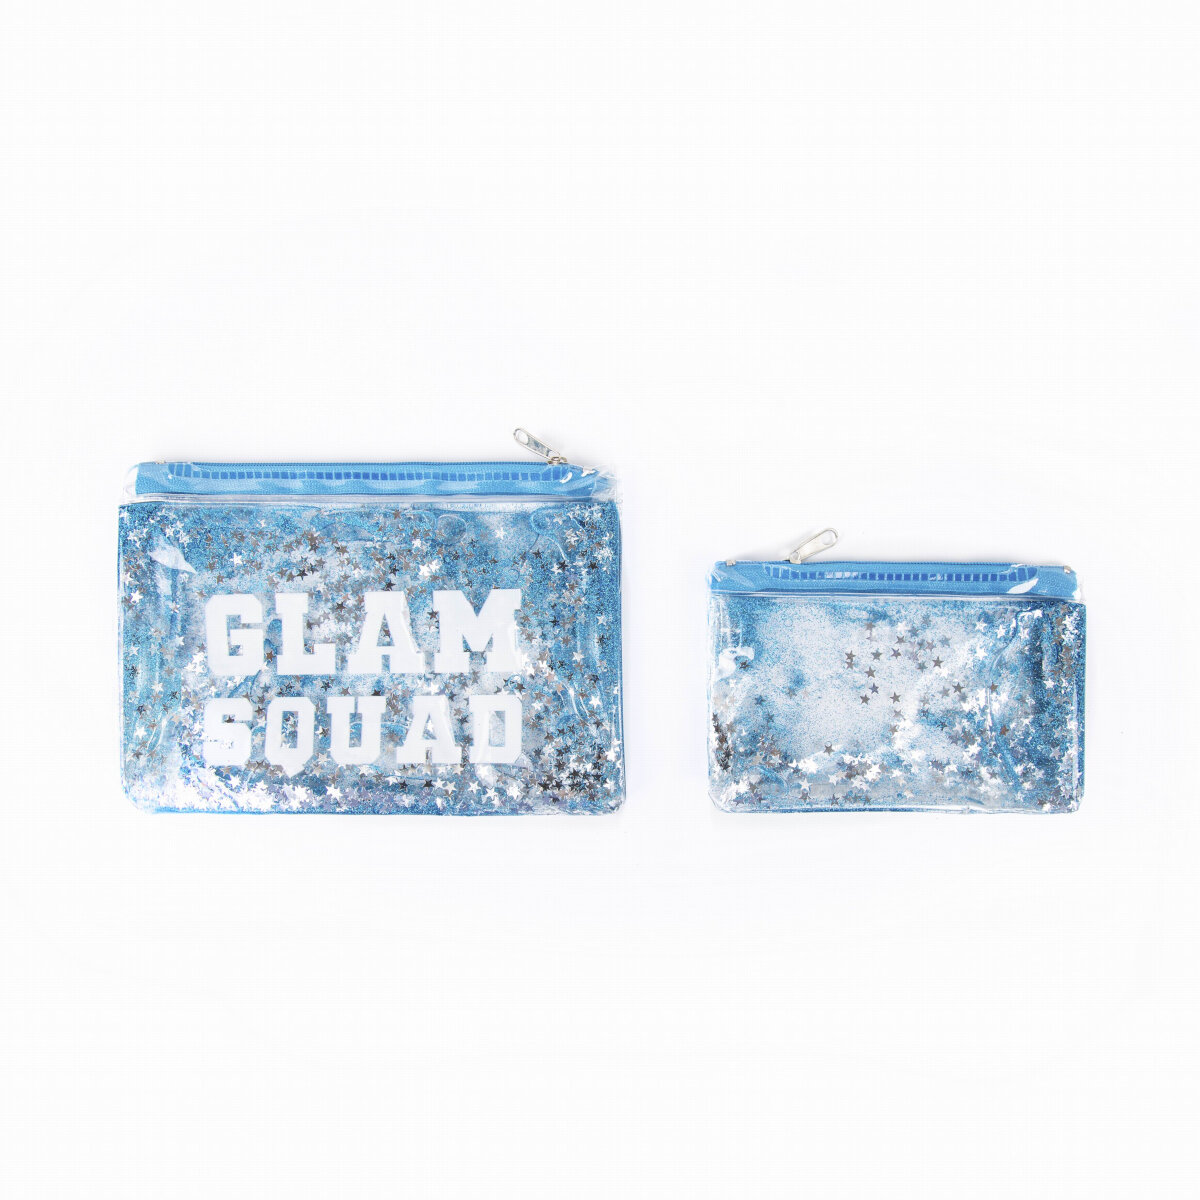 2Pc-Glam-Squad-Pouch---Exclusive-Main-Image